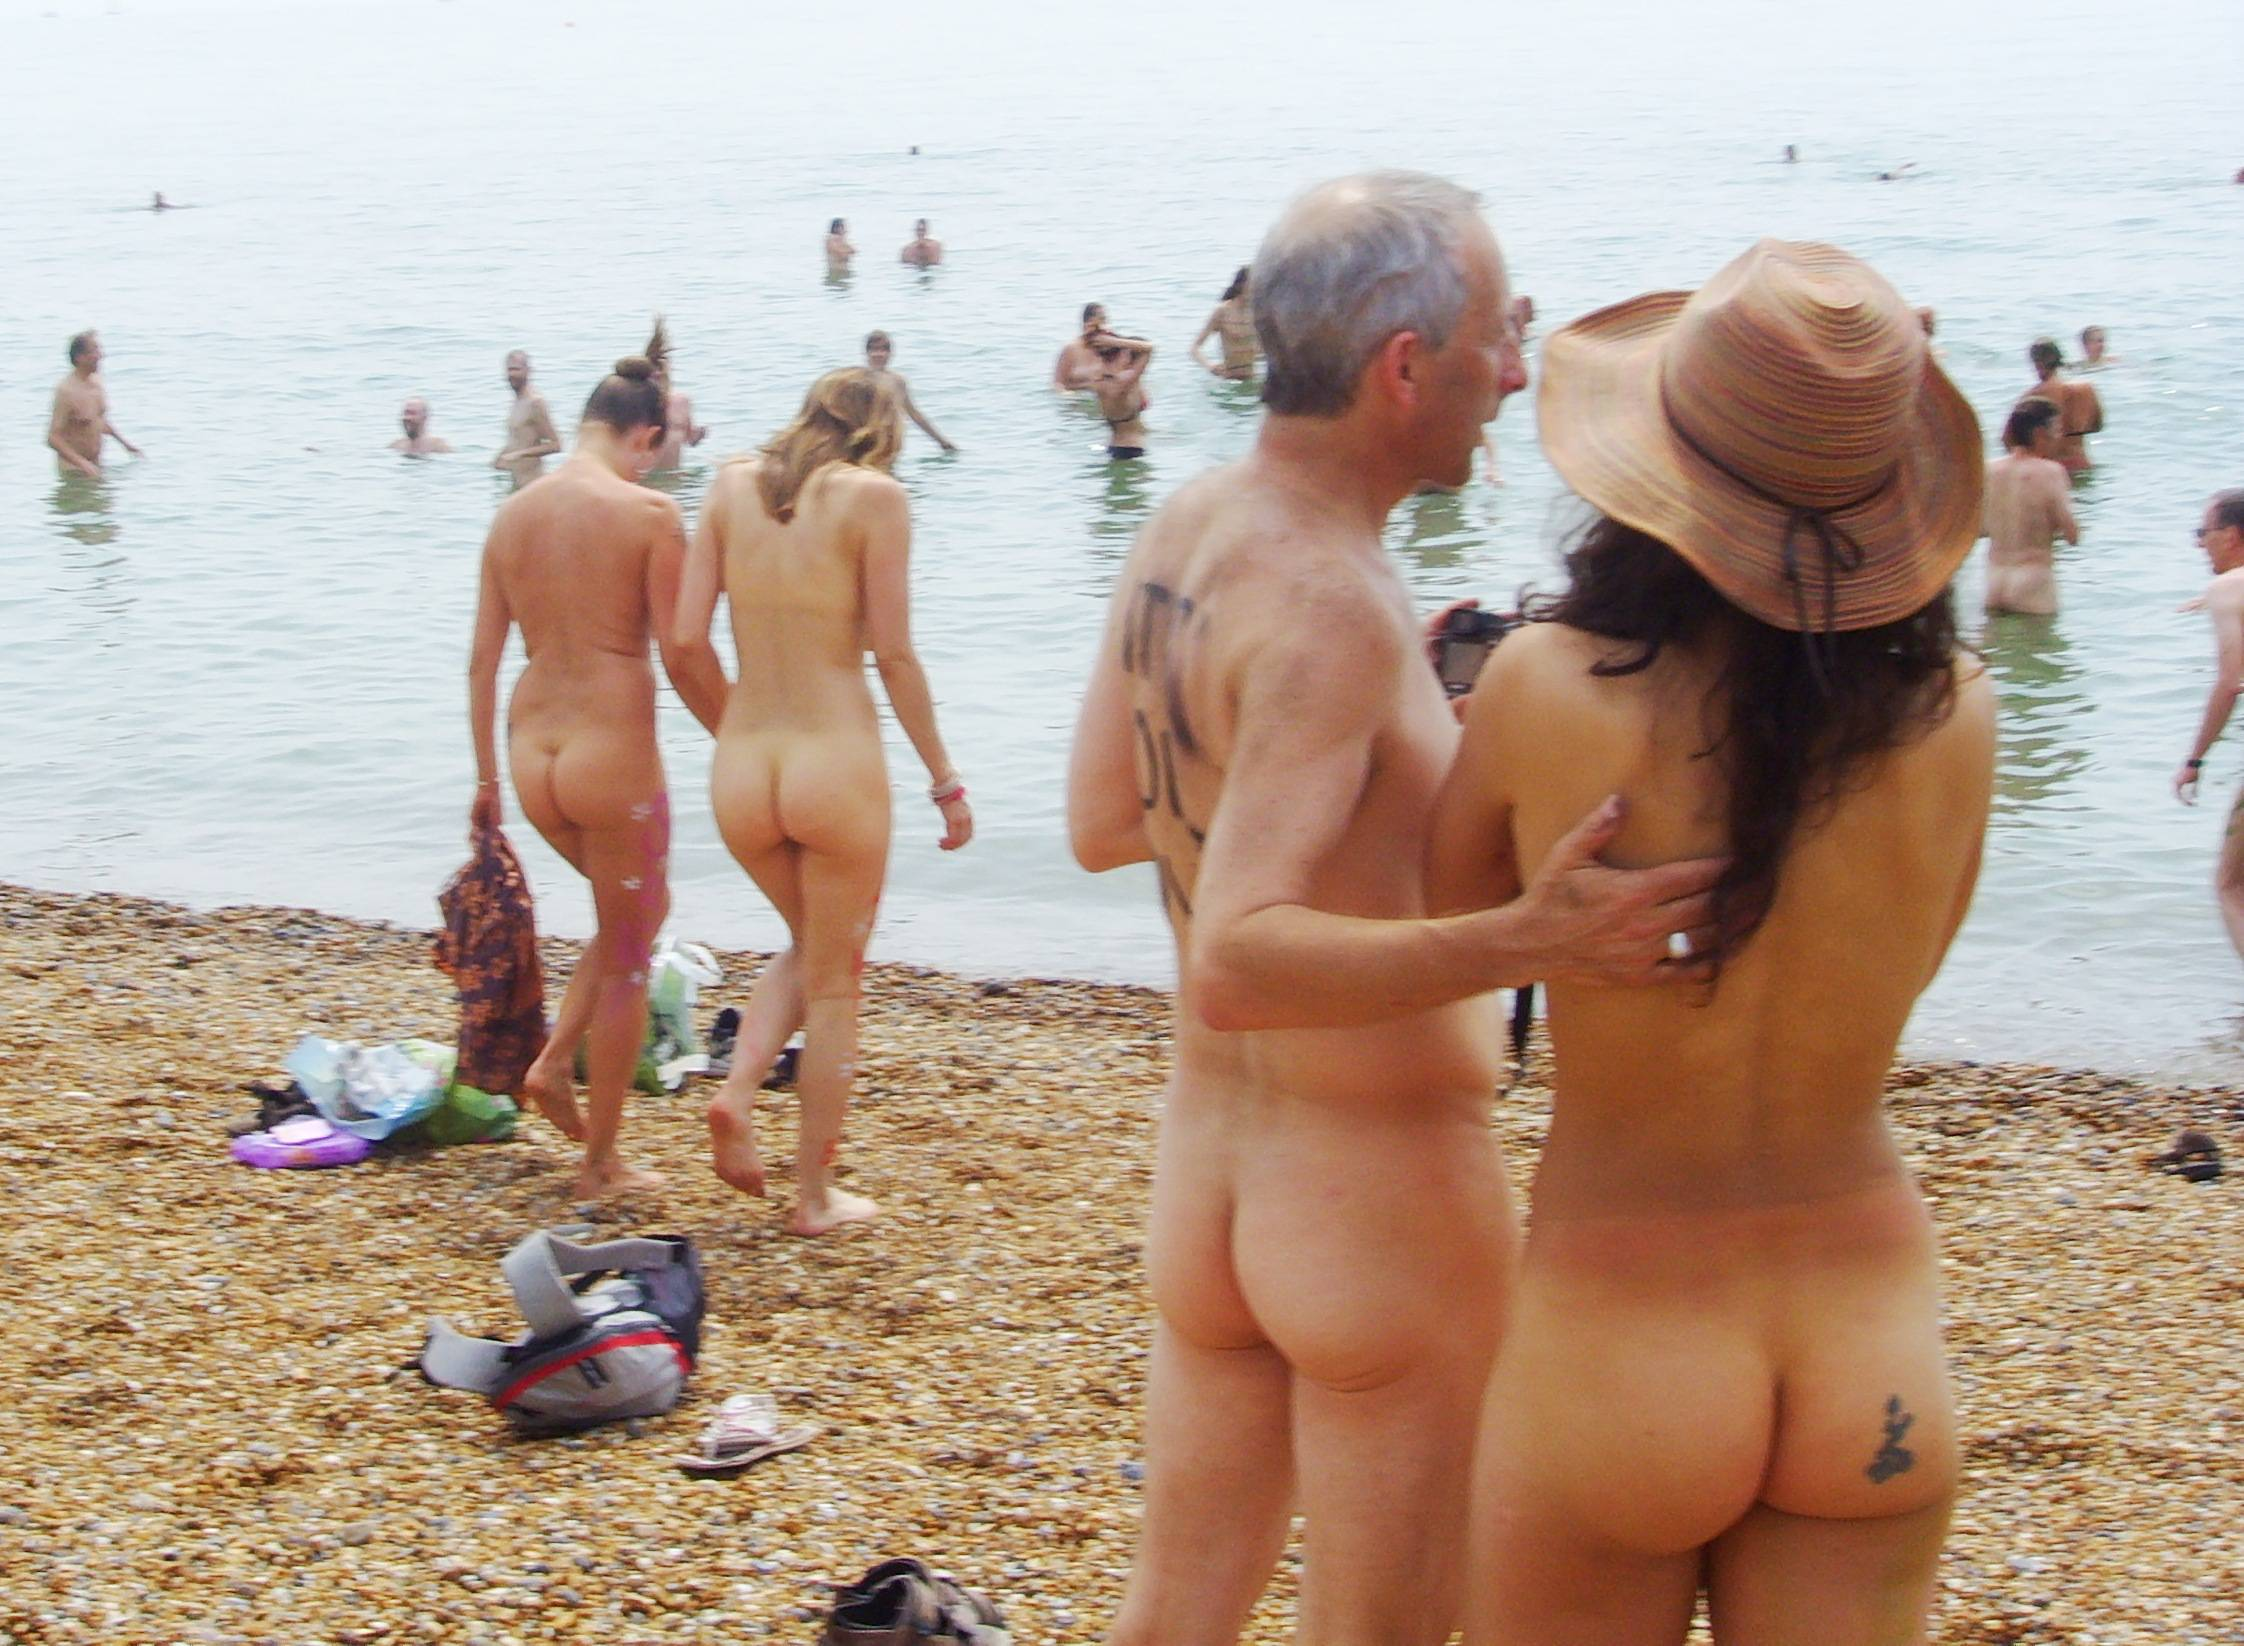 World Naked Bike Ride [WNBR] UK 2011 - 2